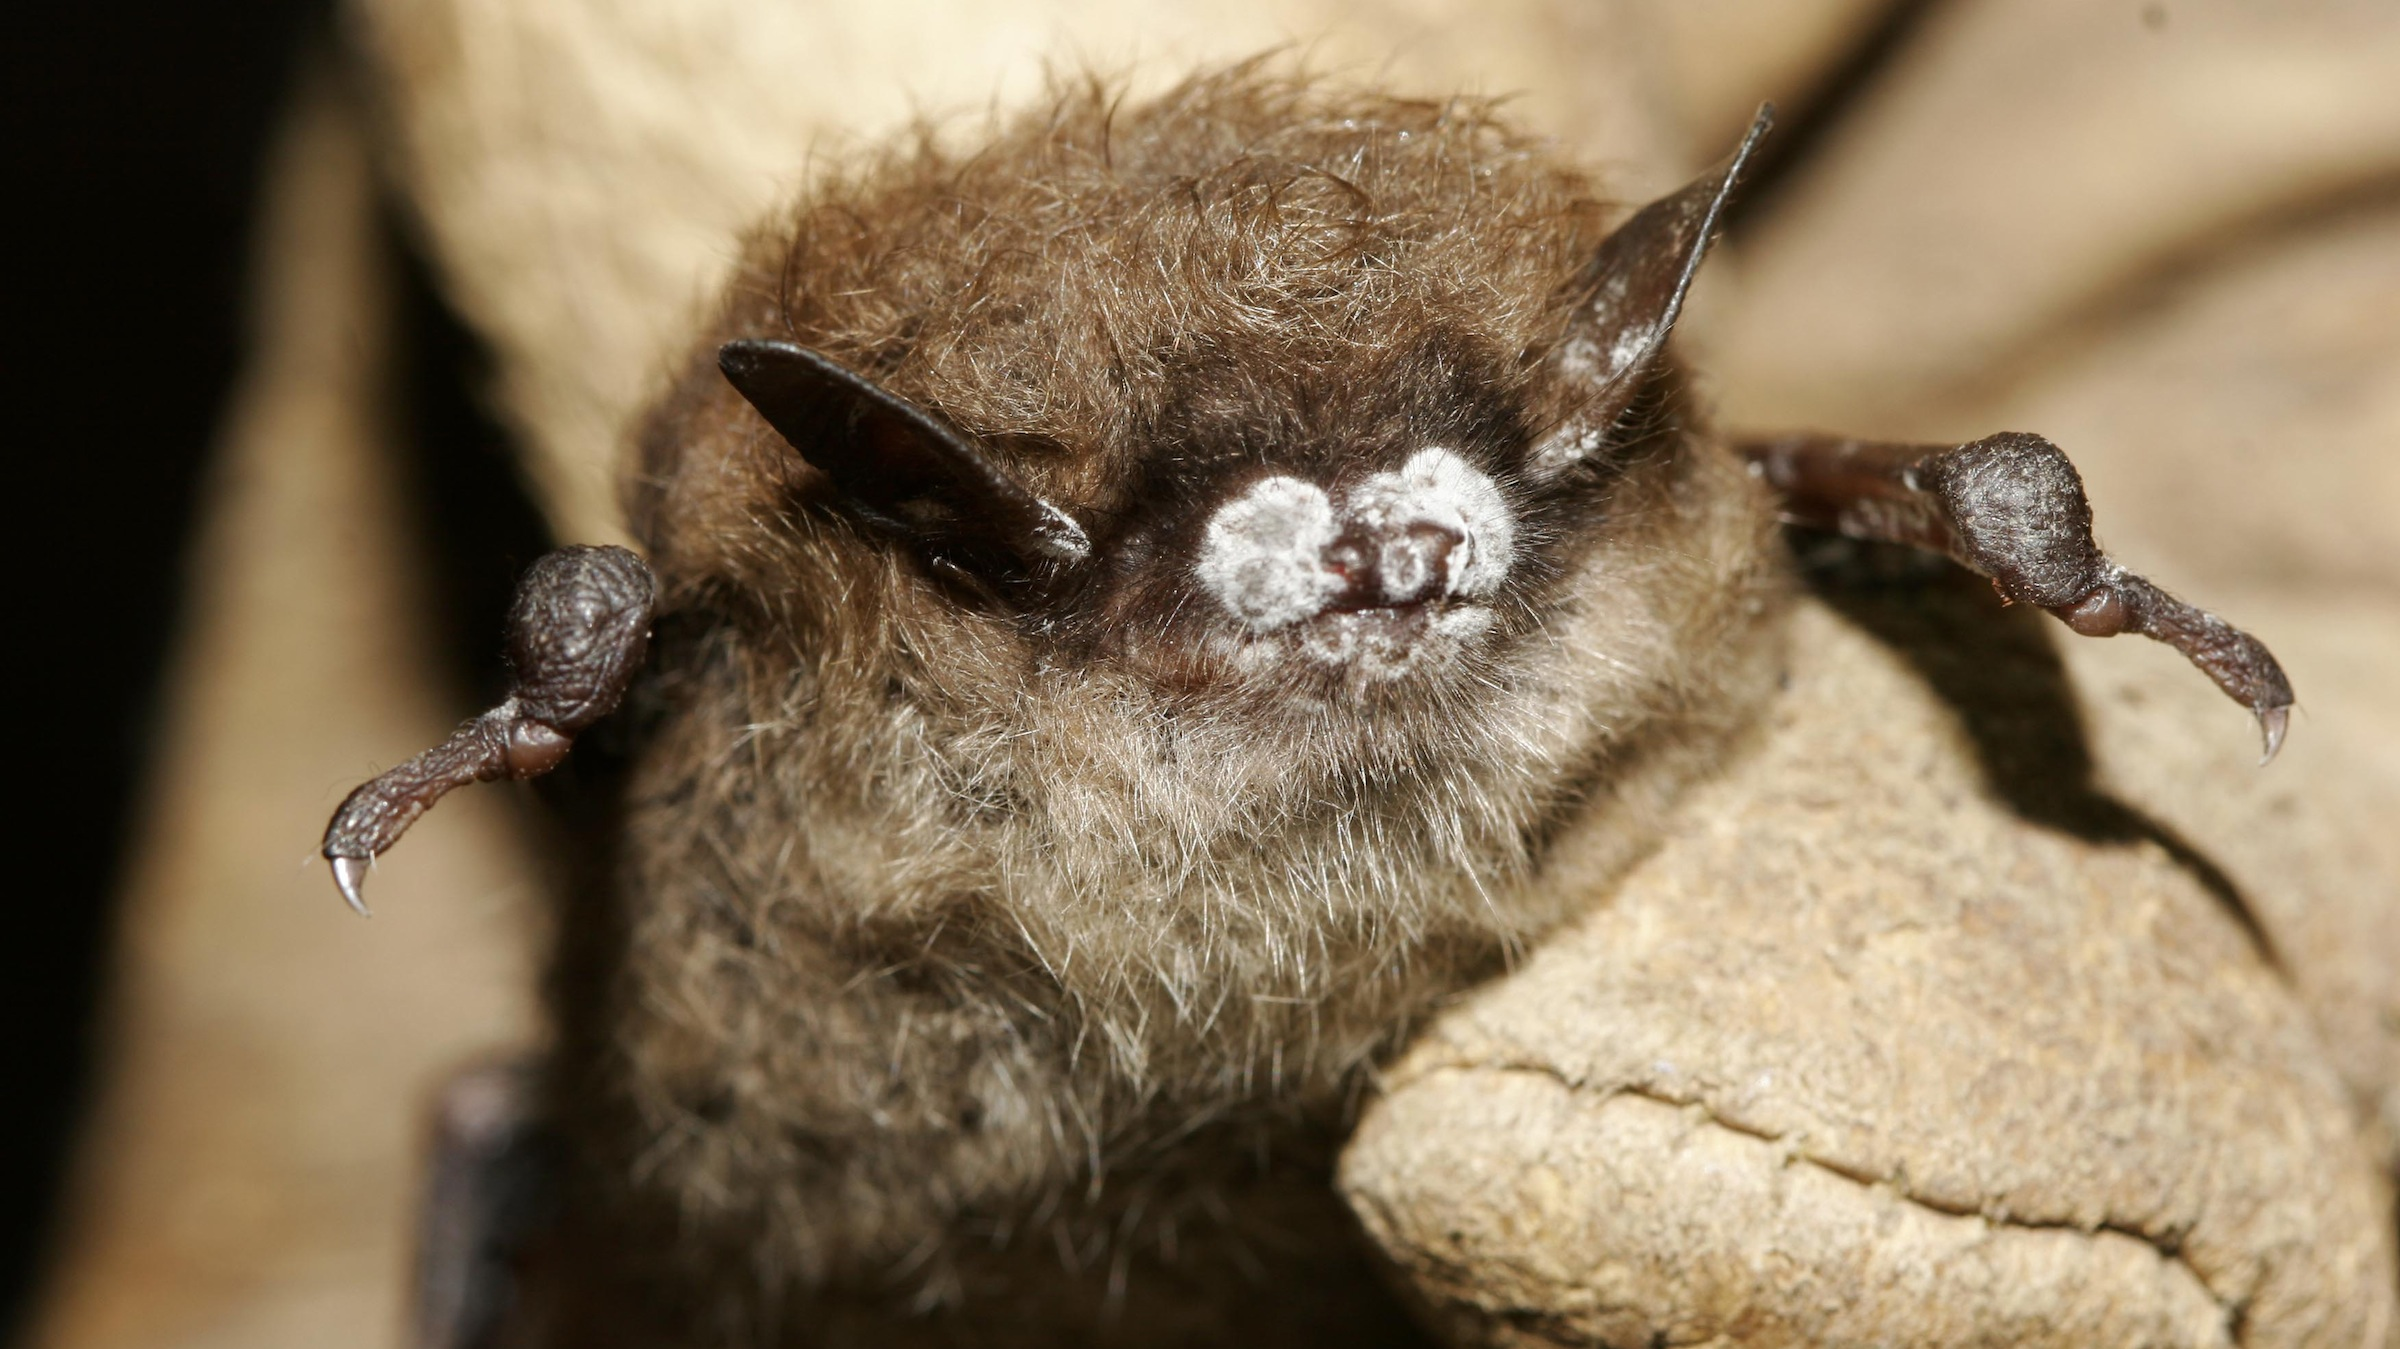 FILE - This October 2008 file photo provided by the New York Department of Environmental Conservation shows a little brown bat suffering from white-nose syndrome, with the signature frosting of fungus on its nose, found in a New York cave. The Illinois Department of Natural Resources said Thursday, Feb. 28, 2013, that the disease that has decimated bat populations in the eastern United States has been detected in four counties in far southern Illinois. (AP Photo/New York Department of Environmental Conservation, Ryan von Linden, File)